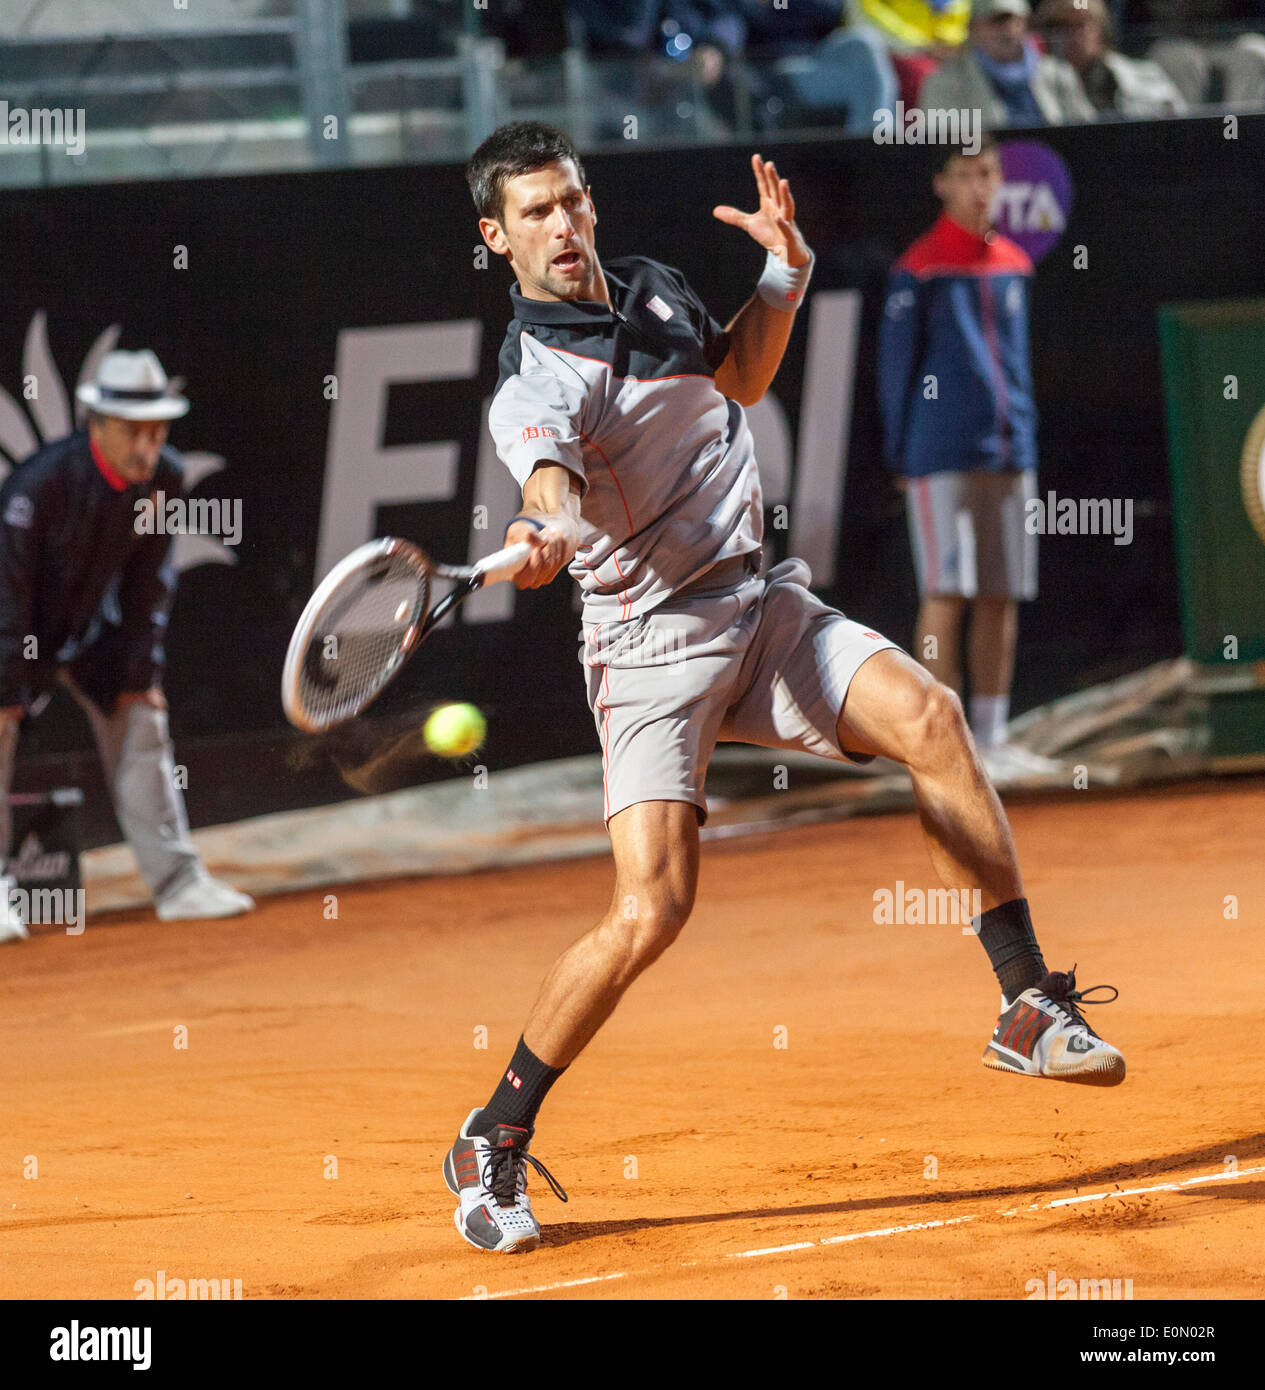 Novak Djokovic vs Phillip Kohlscheiber at the Rome ATP Tennis International 2014 - Stock Image